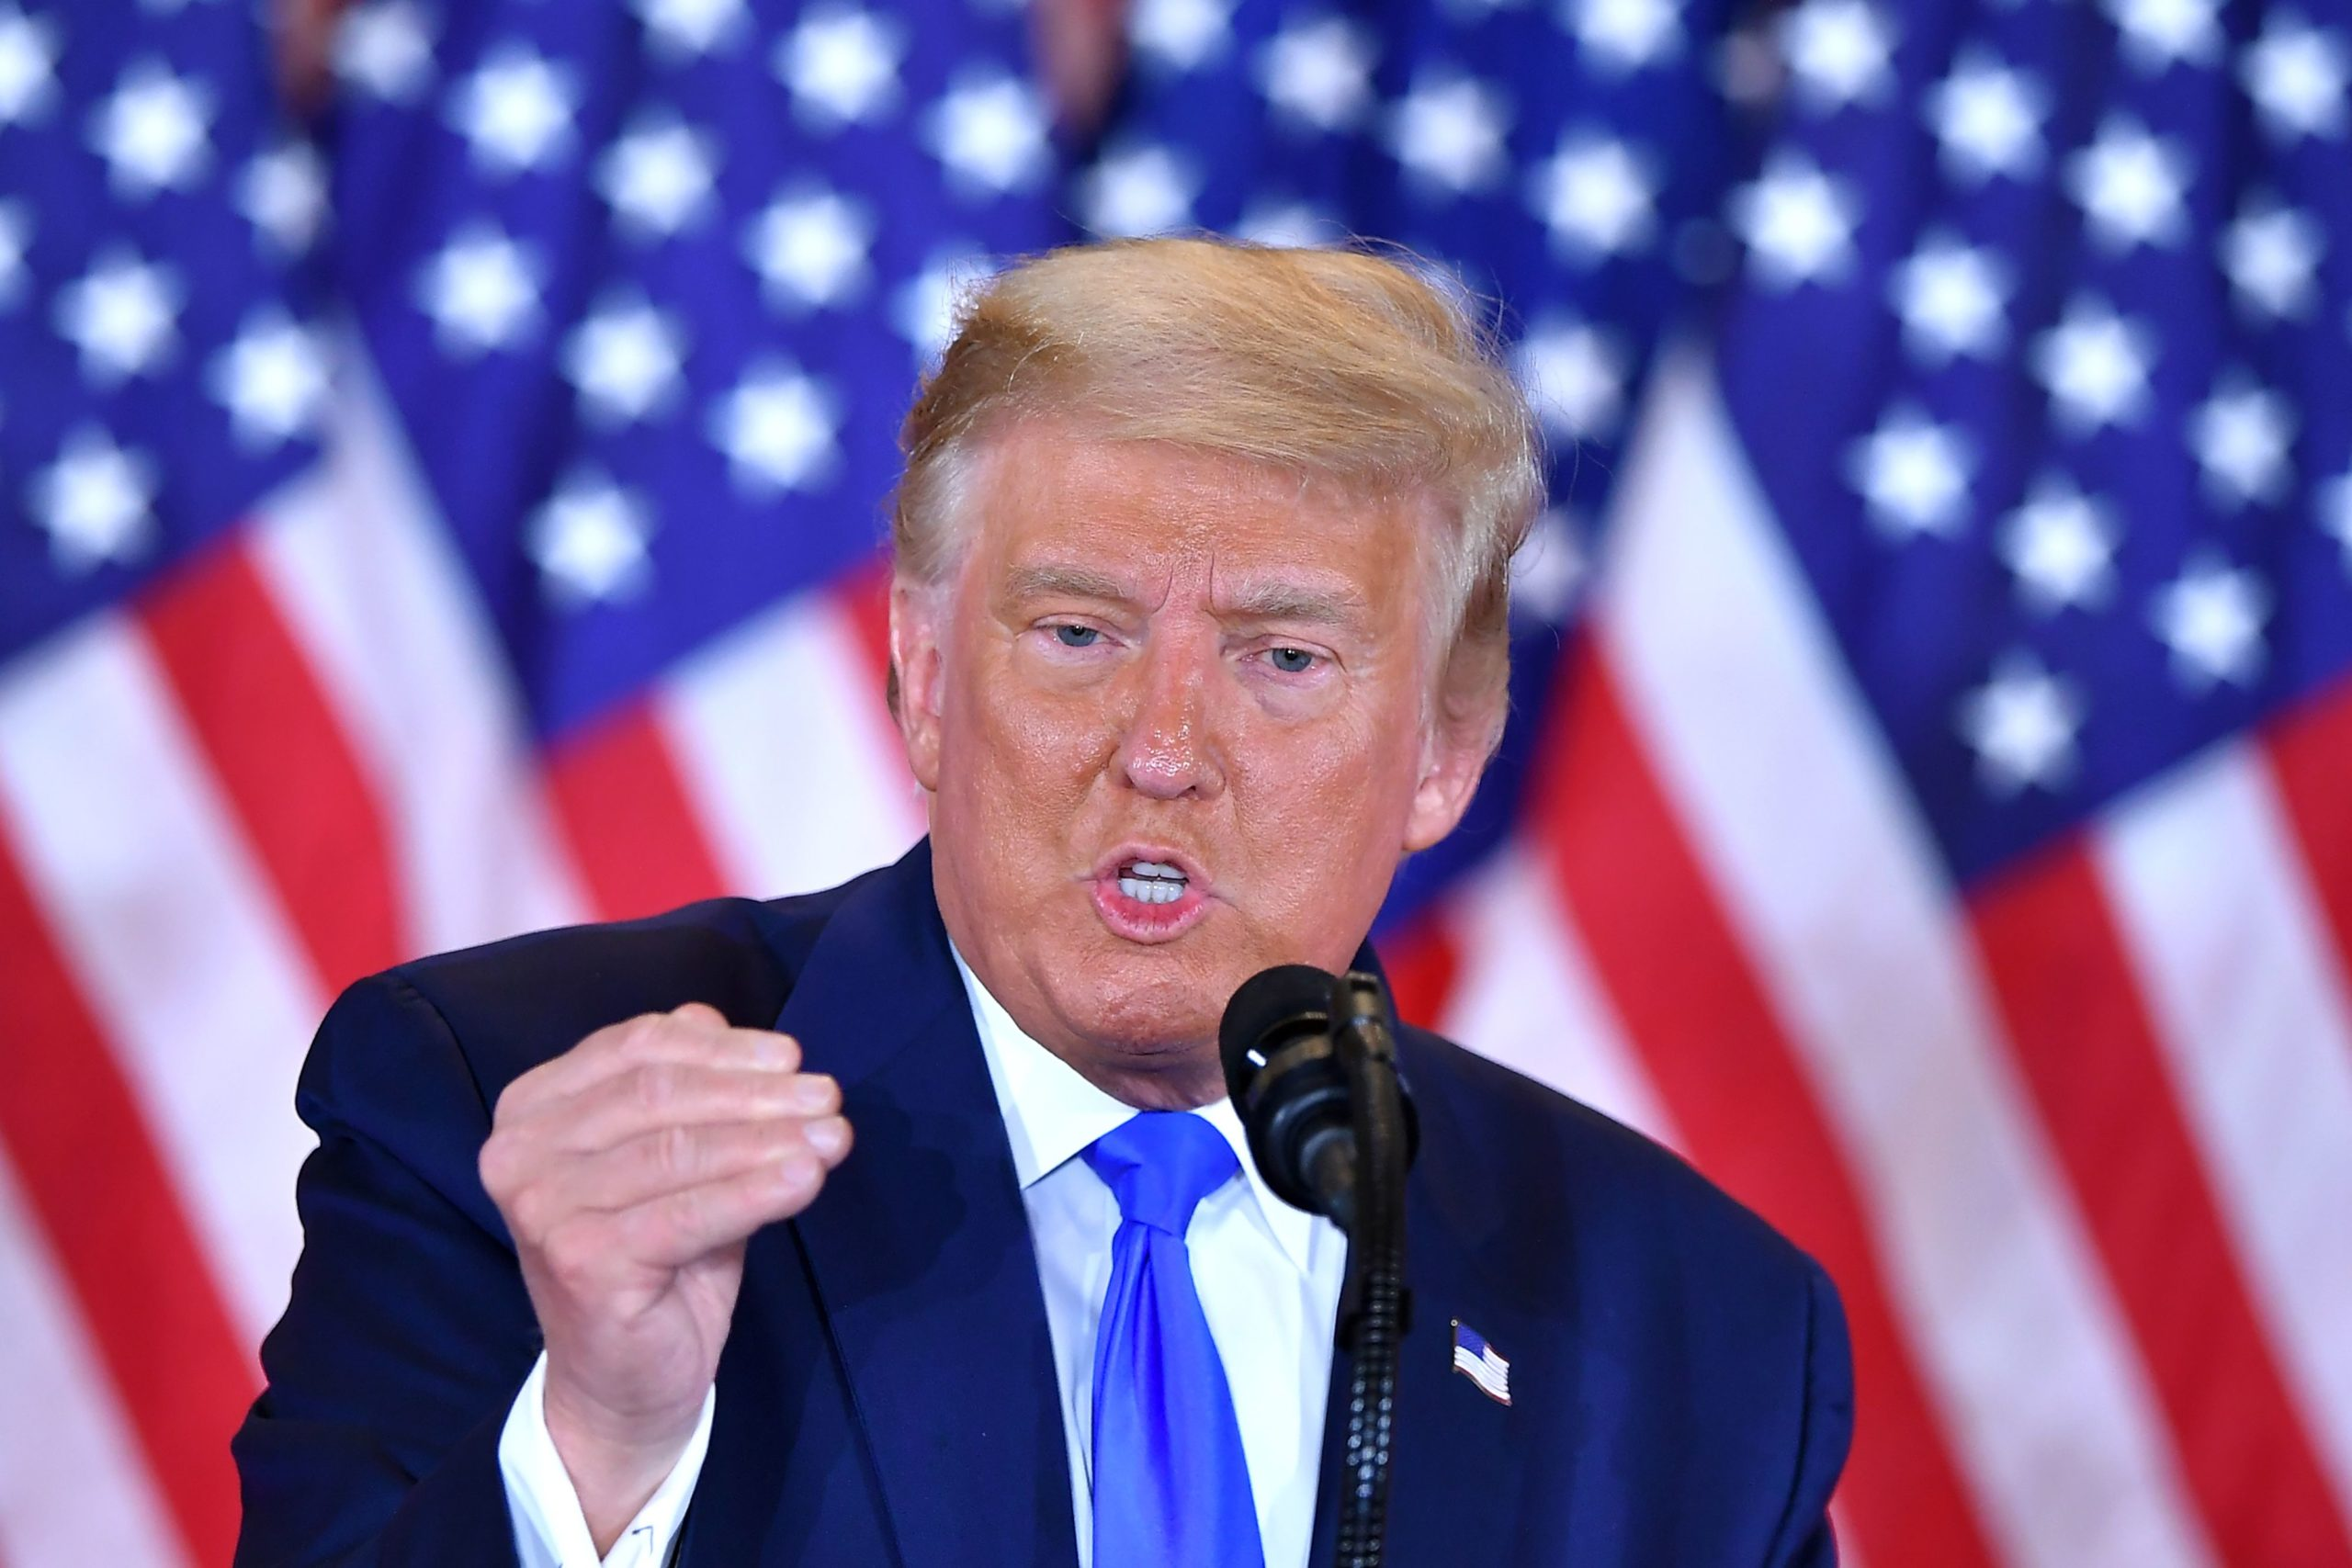 President Donald Trump speaks during election night in the East Room of the White House early Wednesday. (Mandel Ngan/AFP via Getty Images)